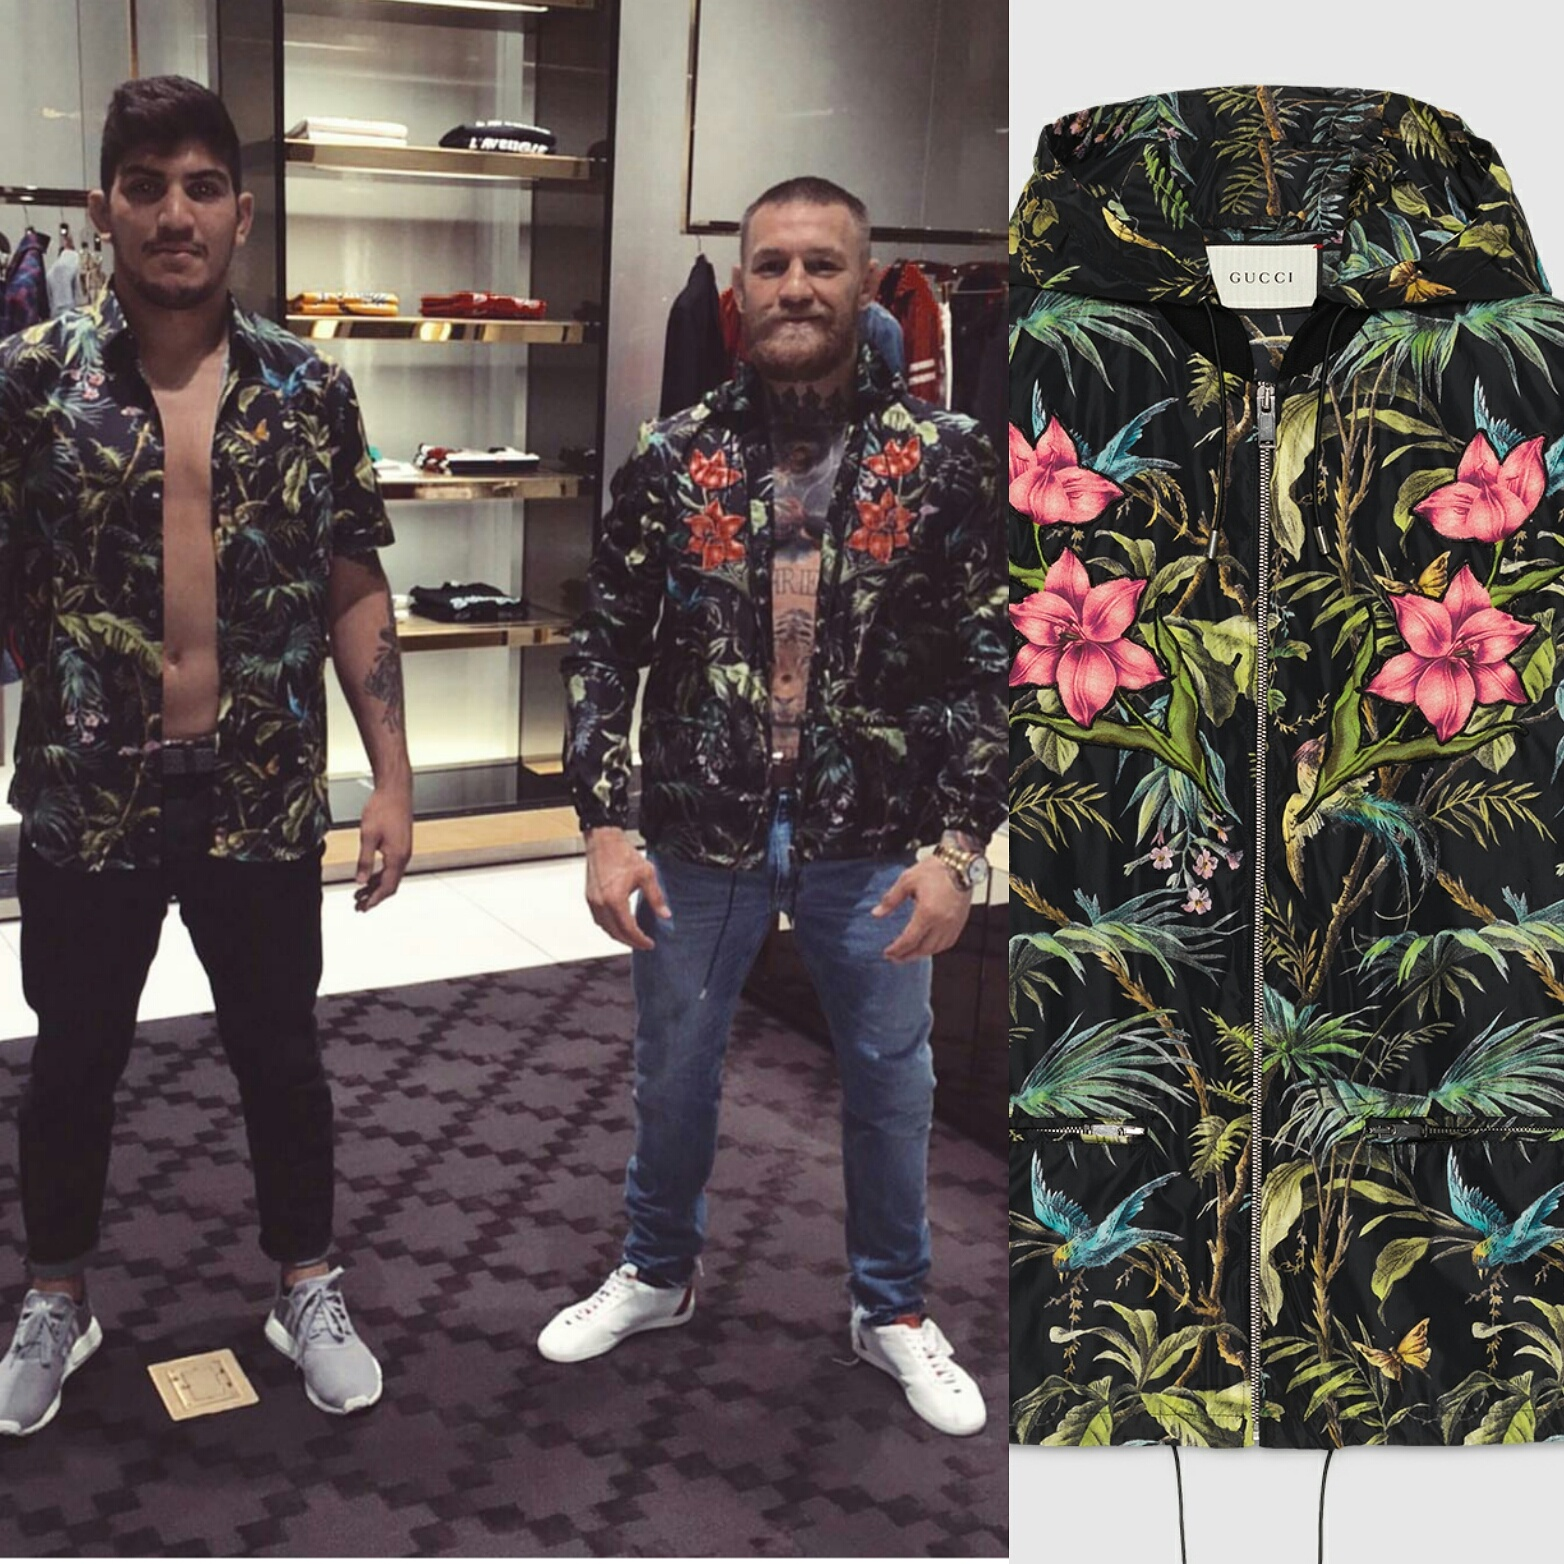 STYLE: UFC Conor McGregor's Instagram Gucci Tropical Print Jacket